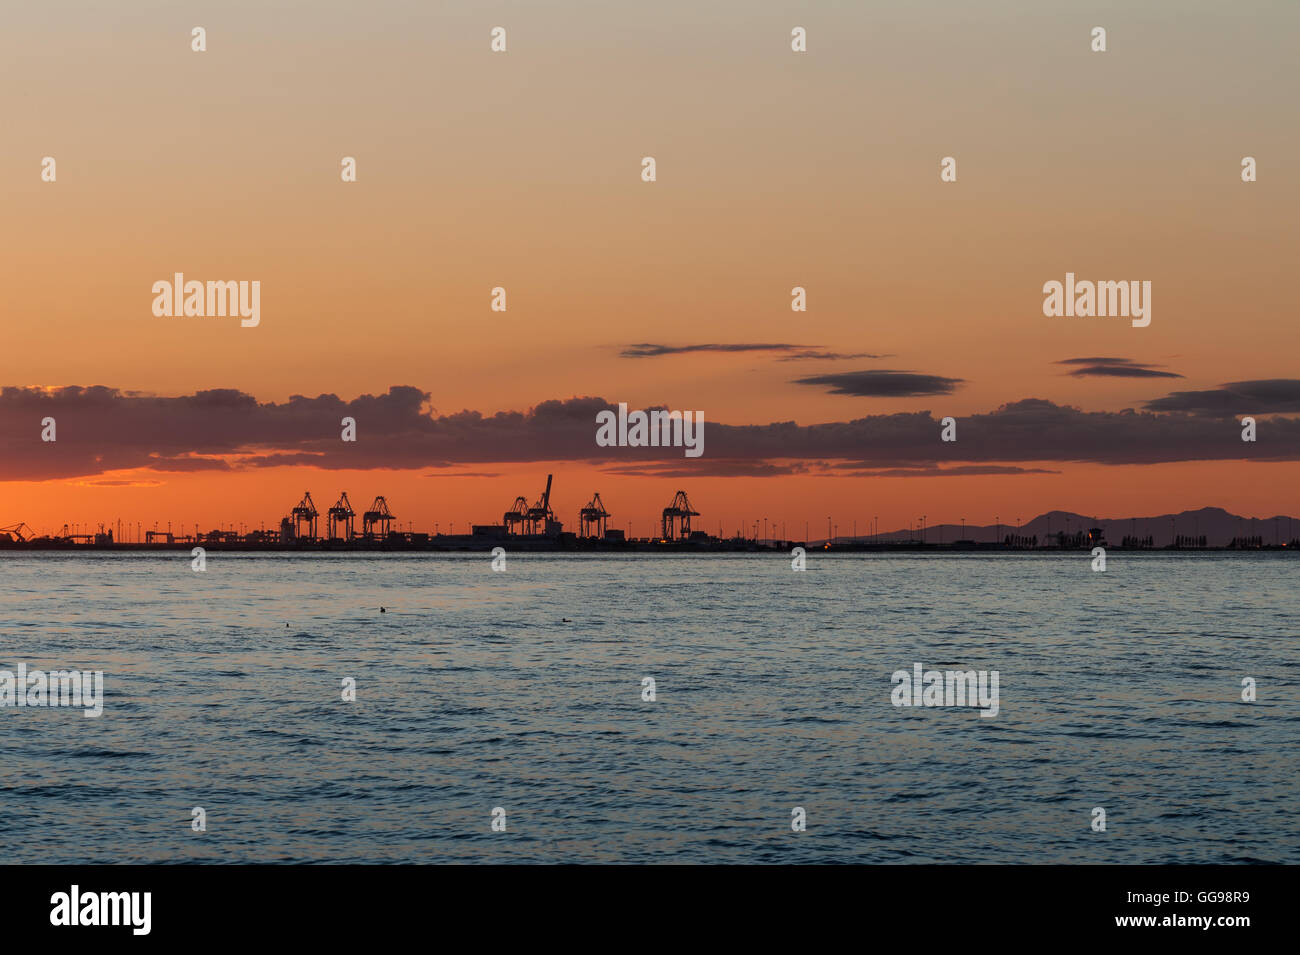 Sun dawn over the cranes from Point Roberts, Washington State, USA - Stock Image